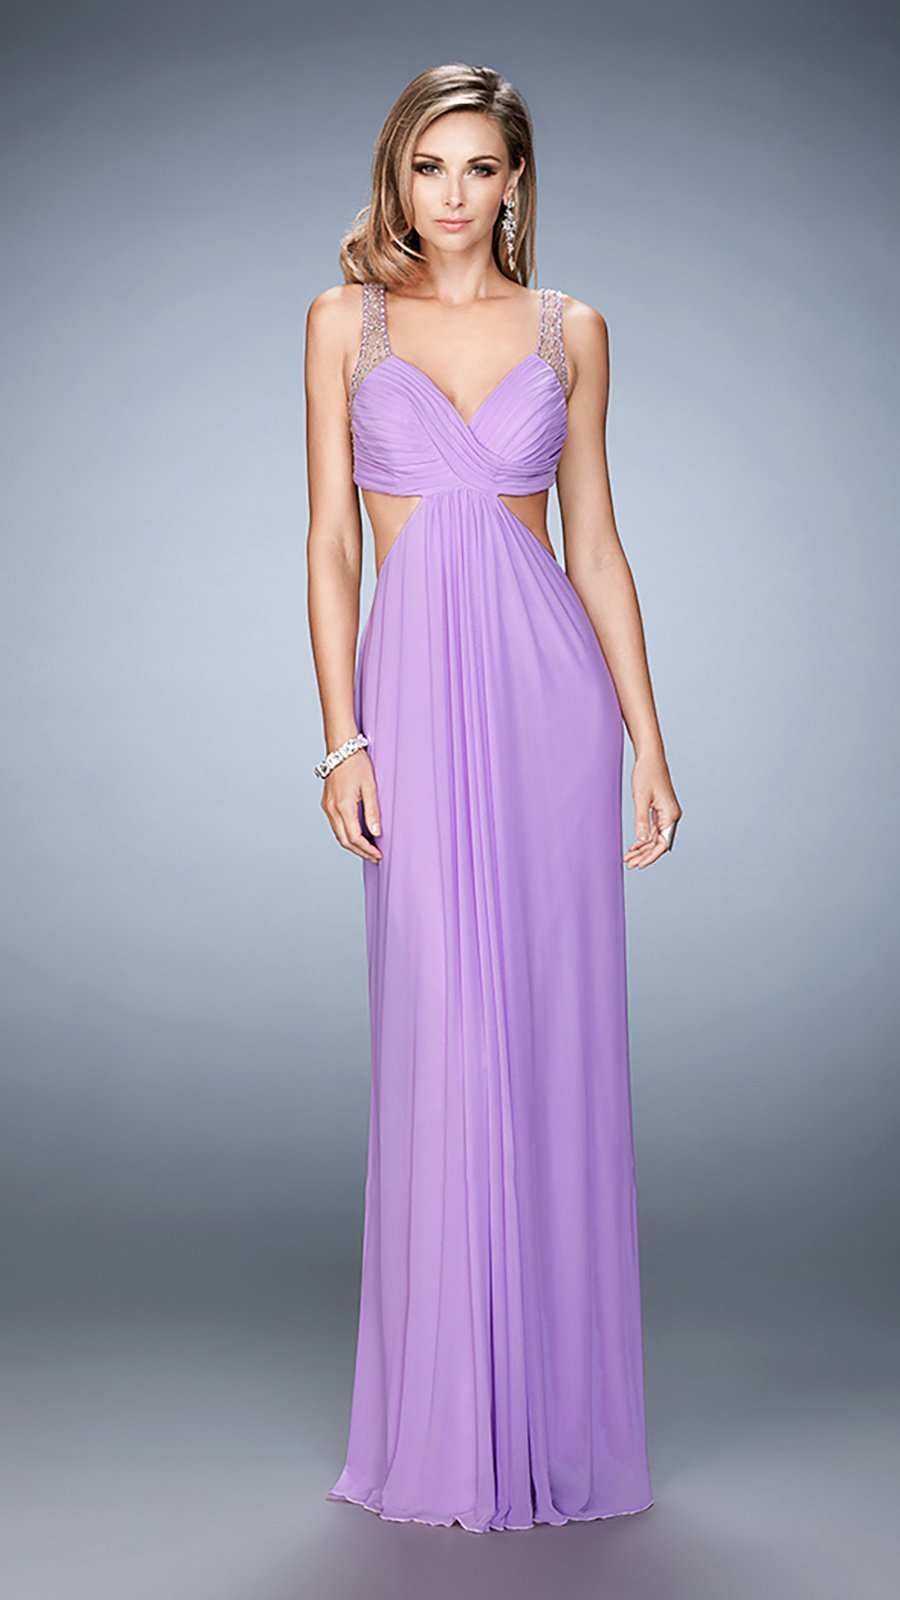 La Femme Bejeweled V-neck Dress 22729 In Purple